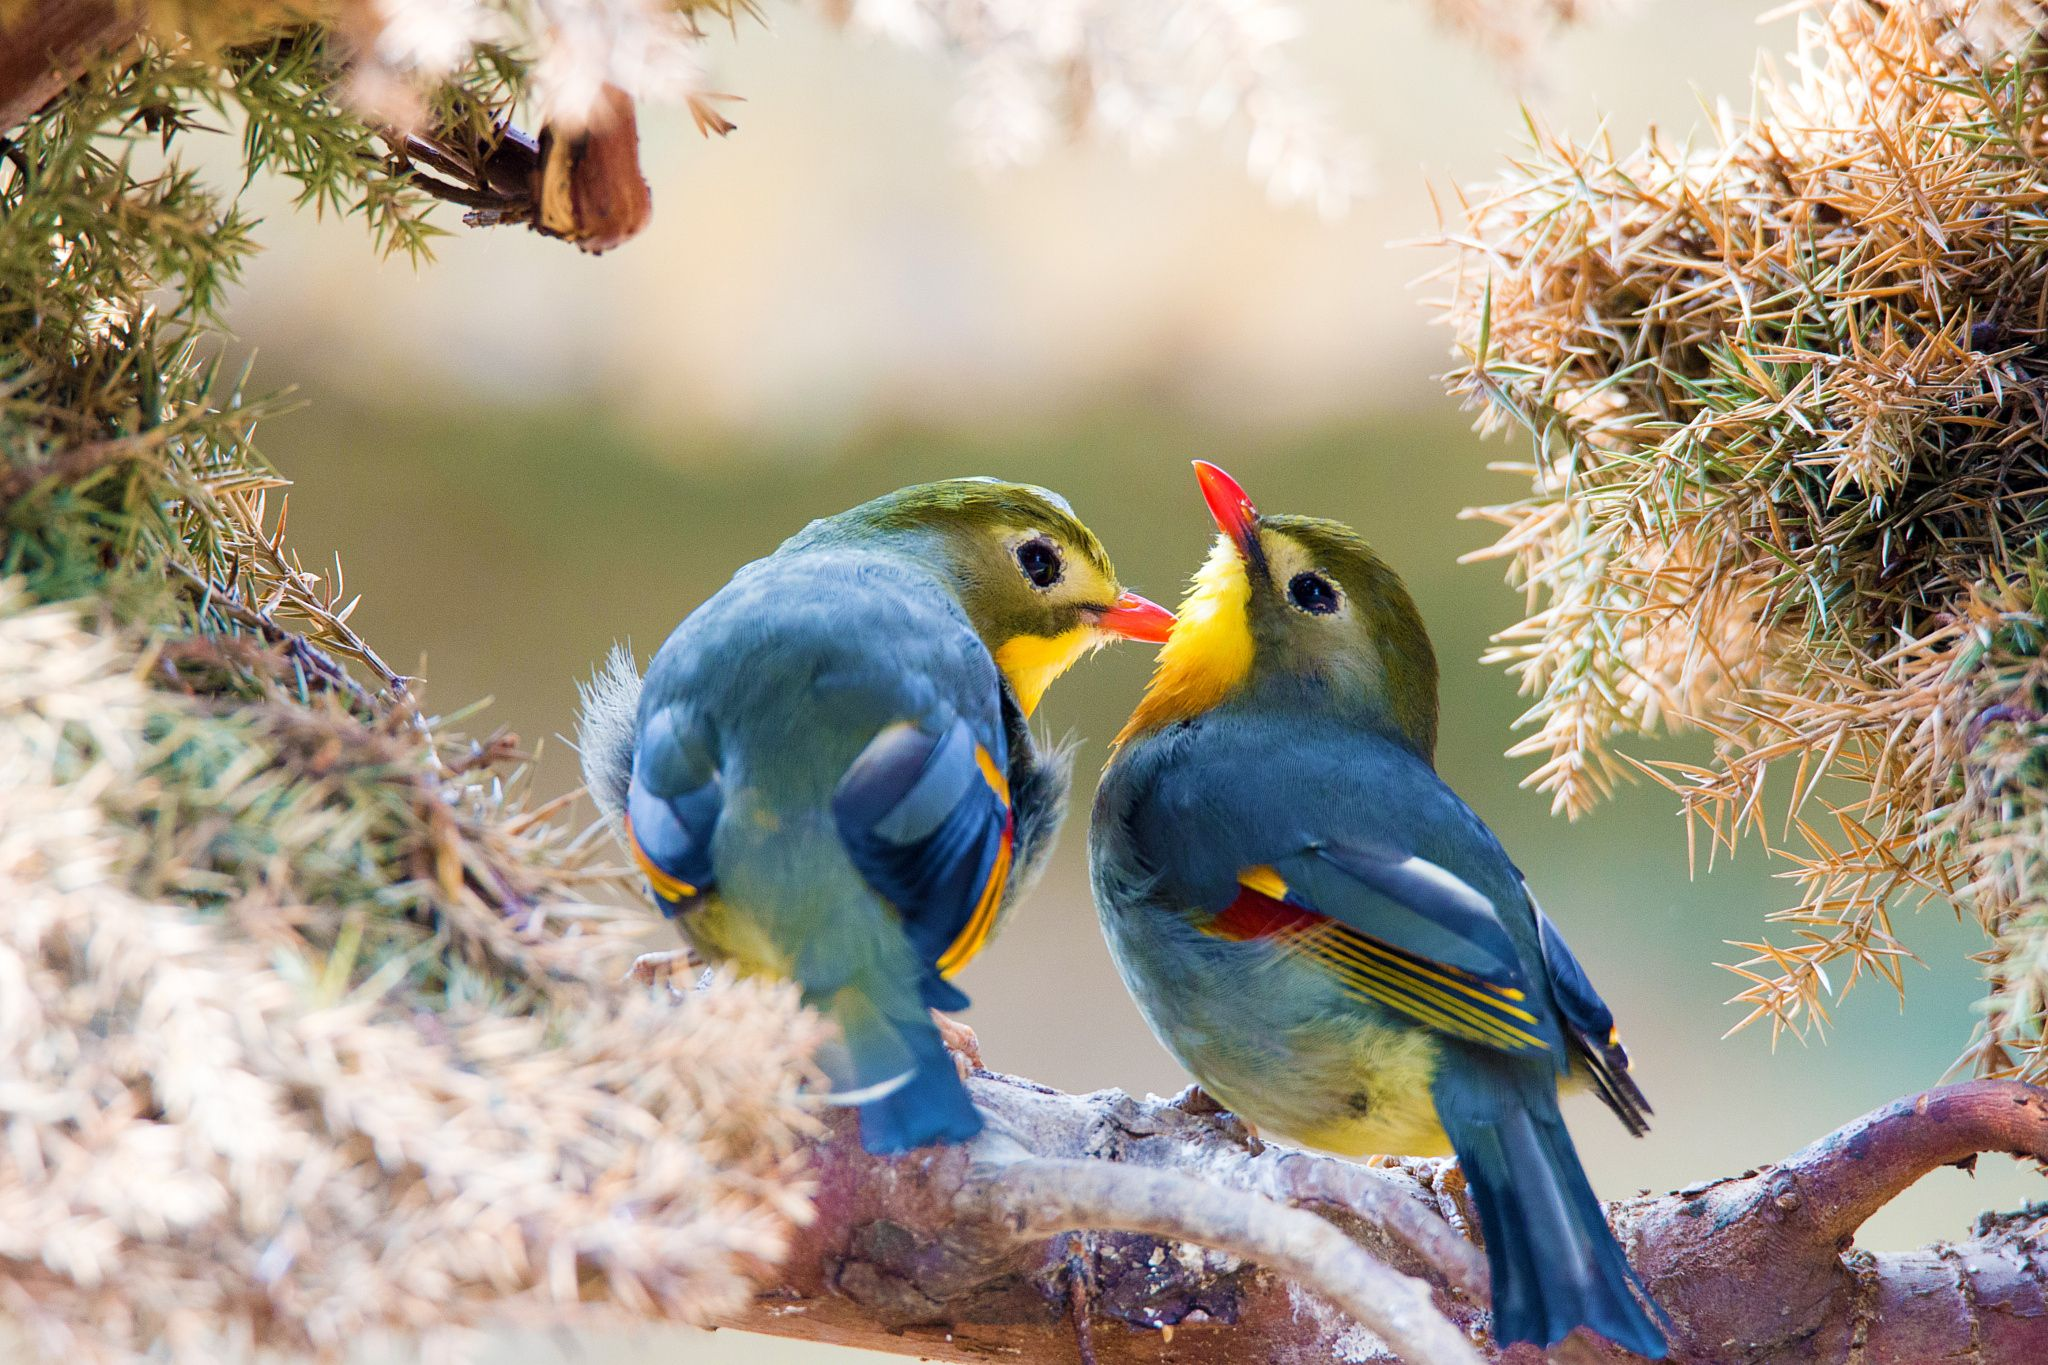 Photograph The bird of husband and wife by 烁 杨 on 500px